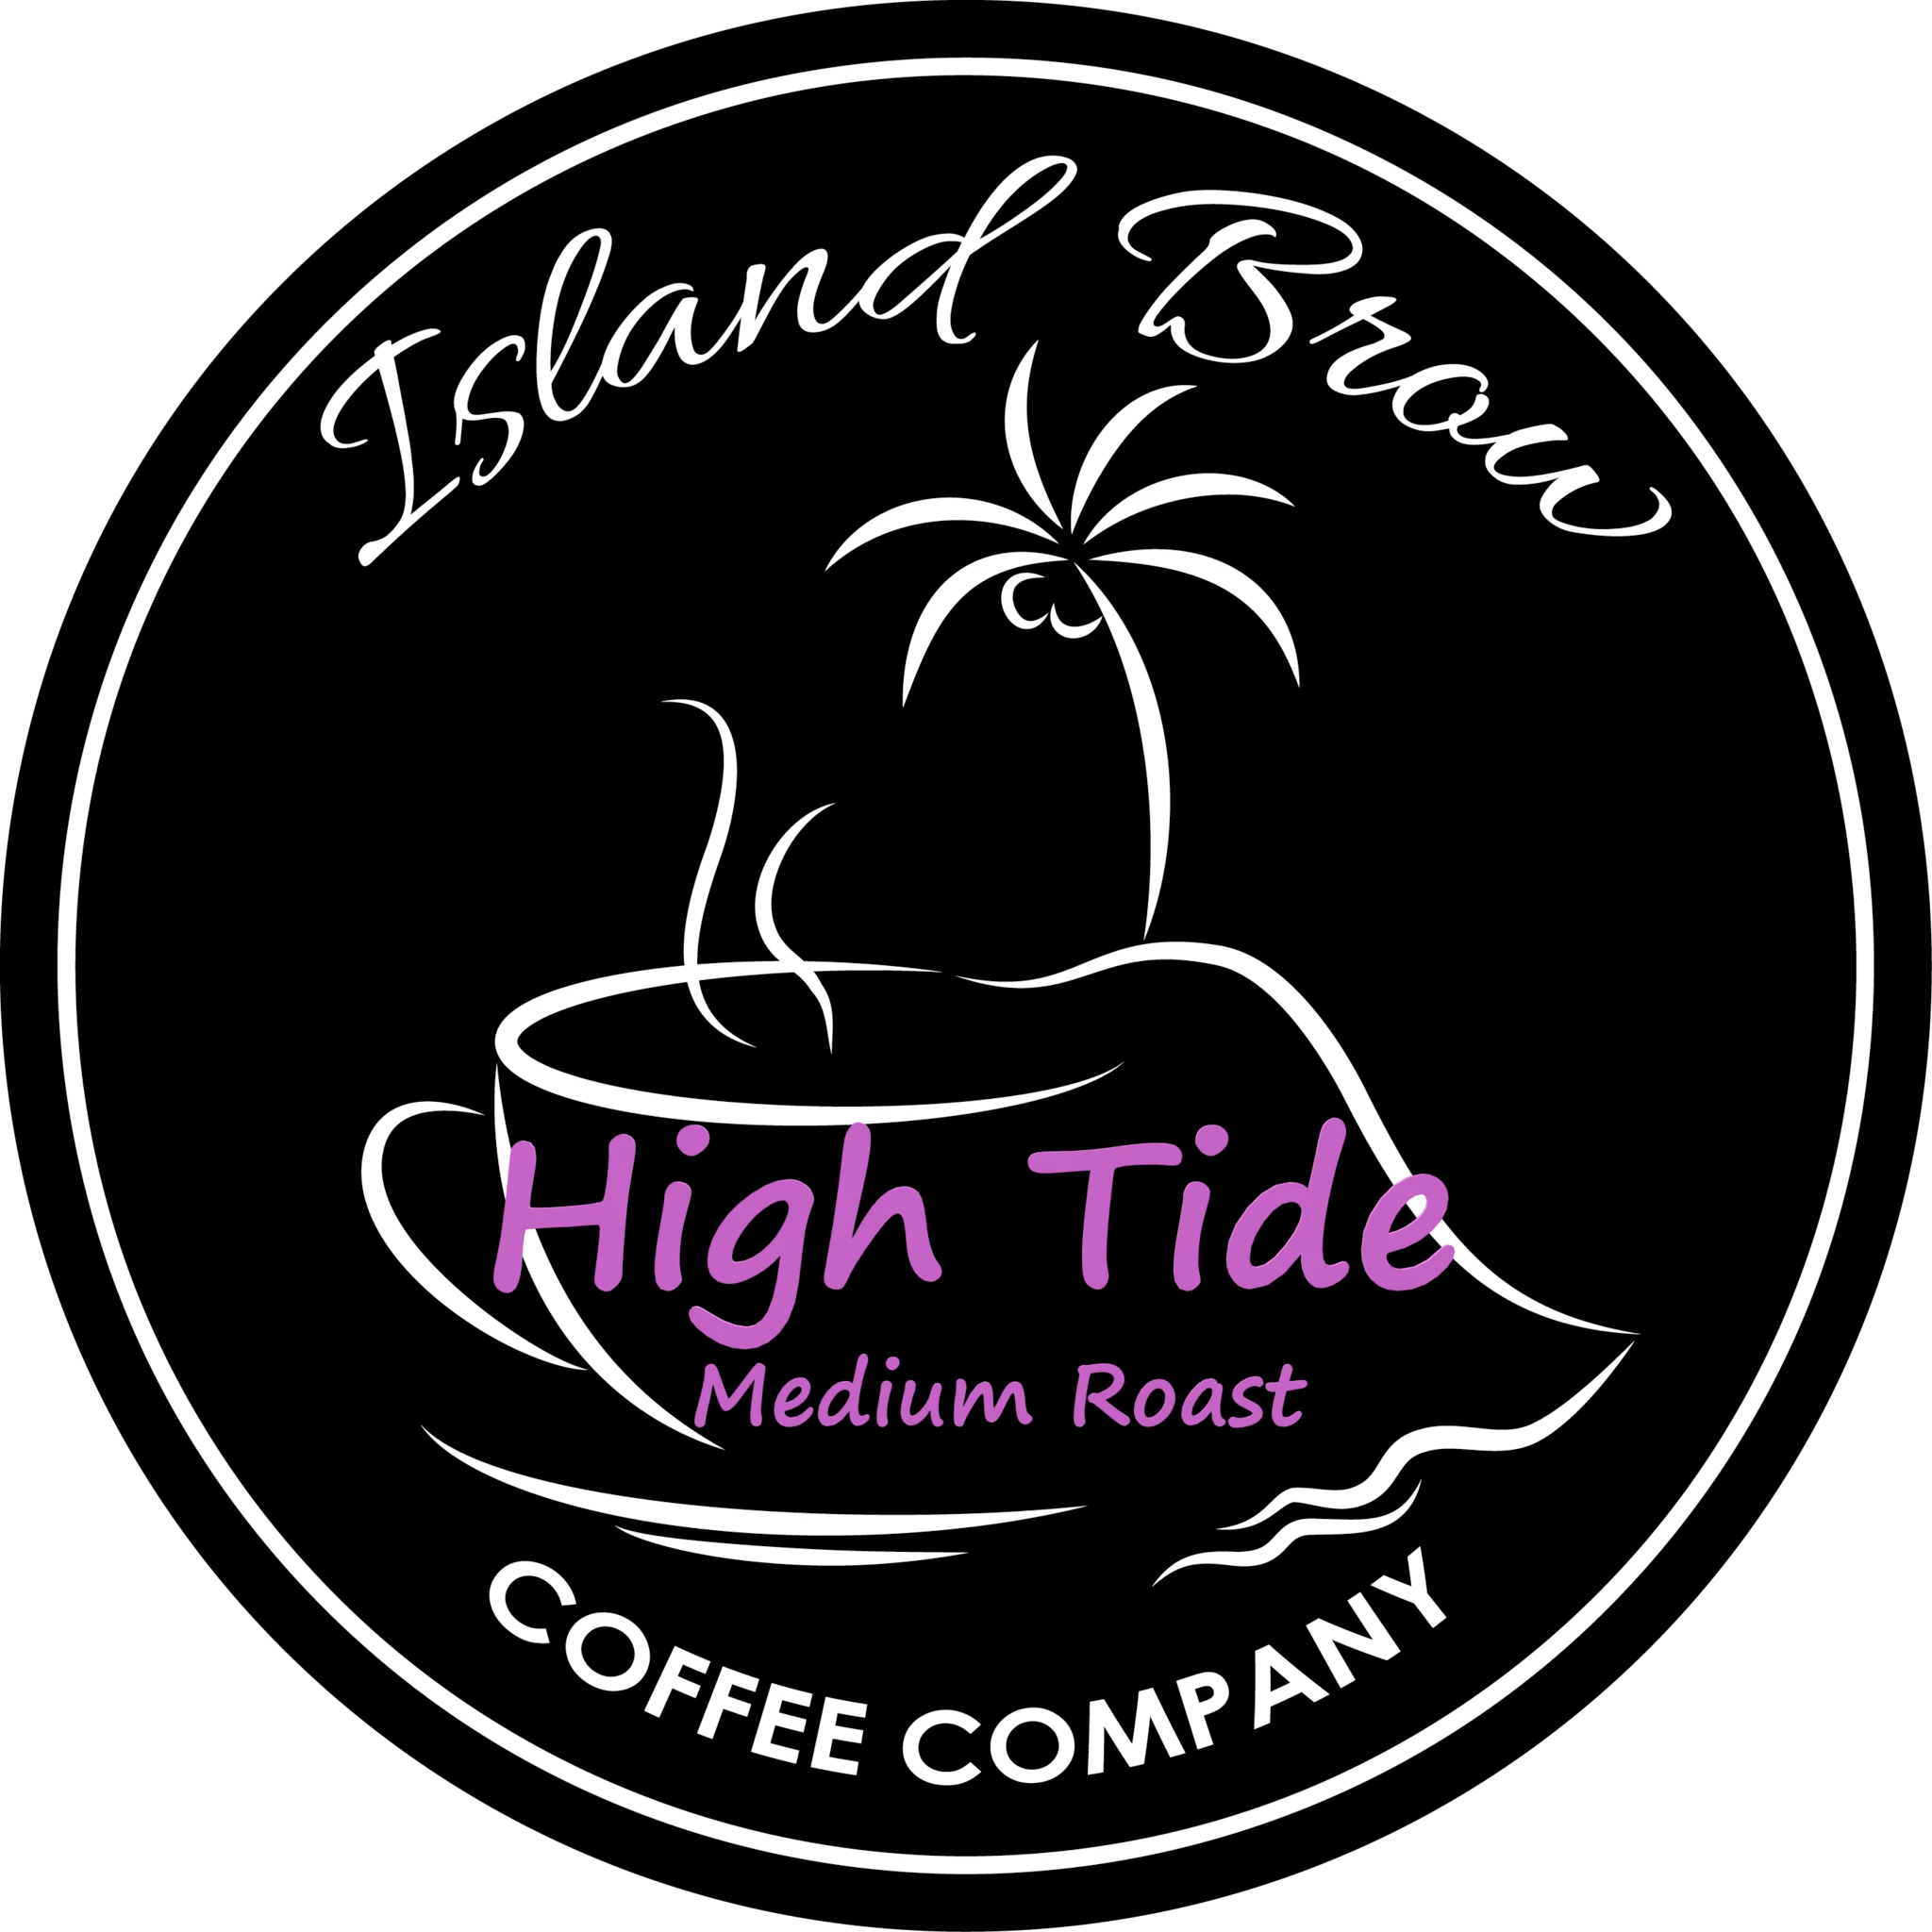 High Tide from Island Brow Coffee Company